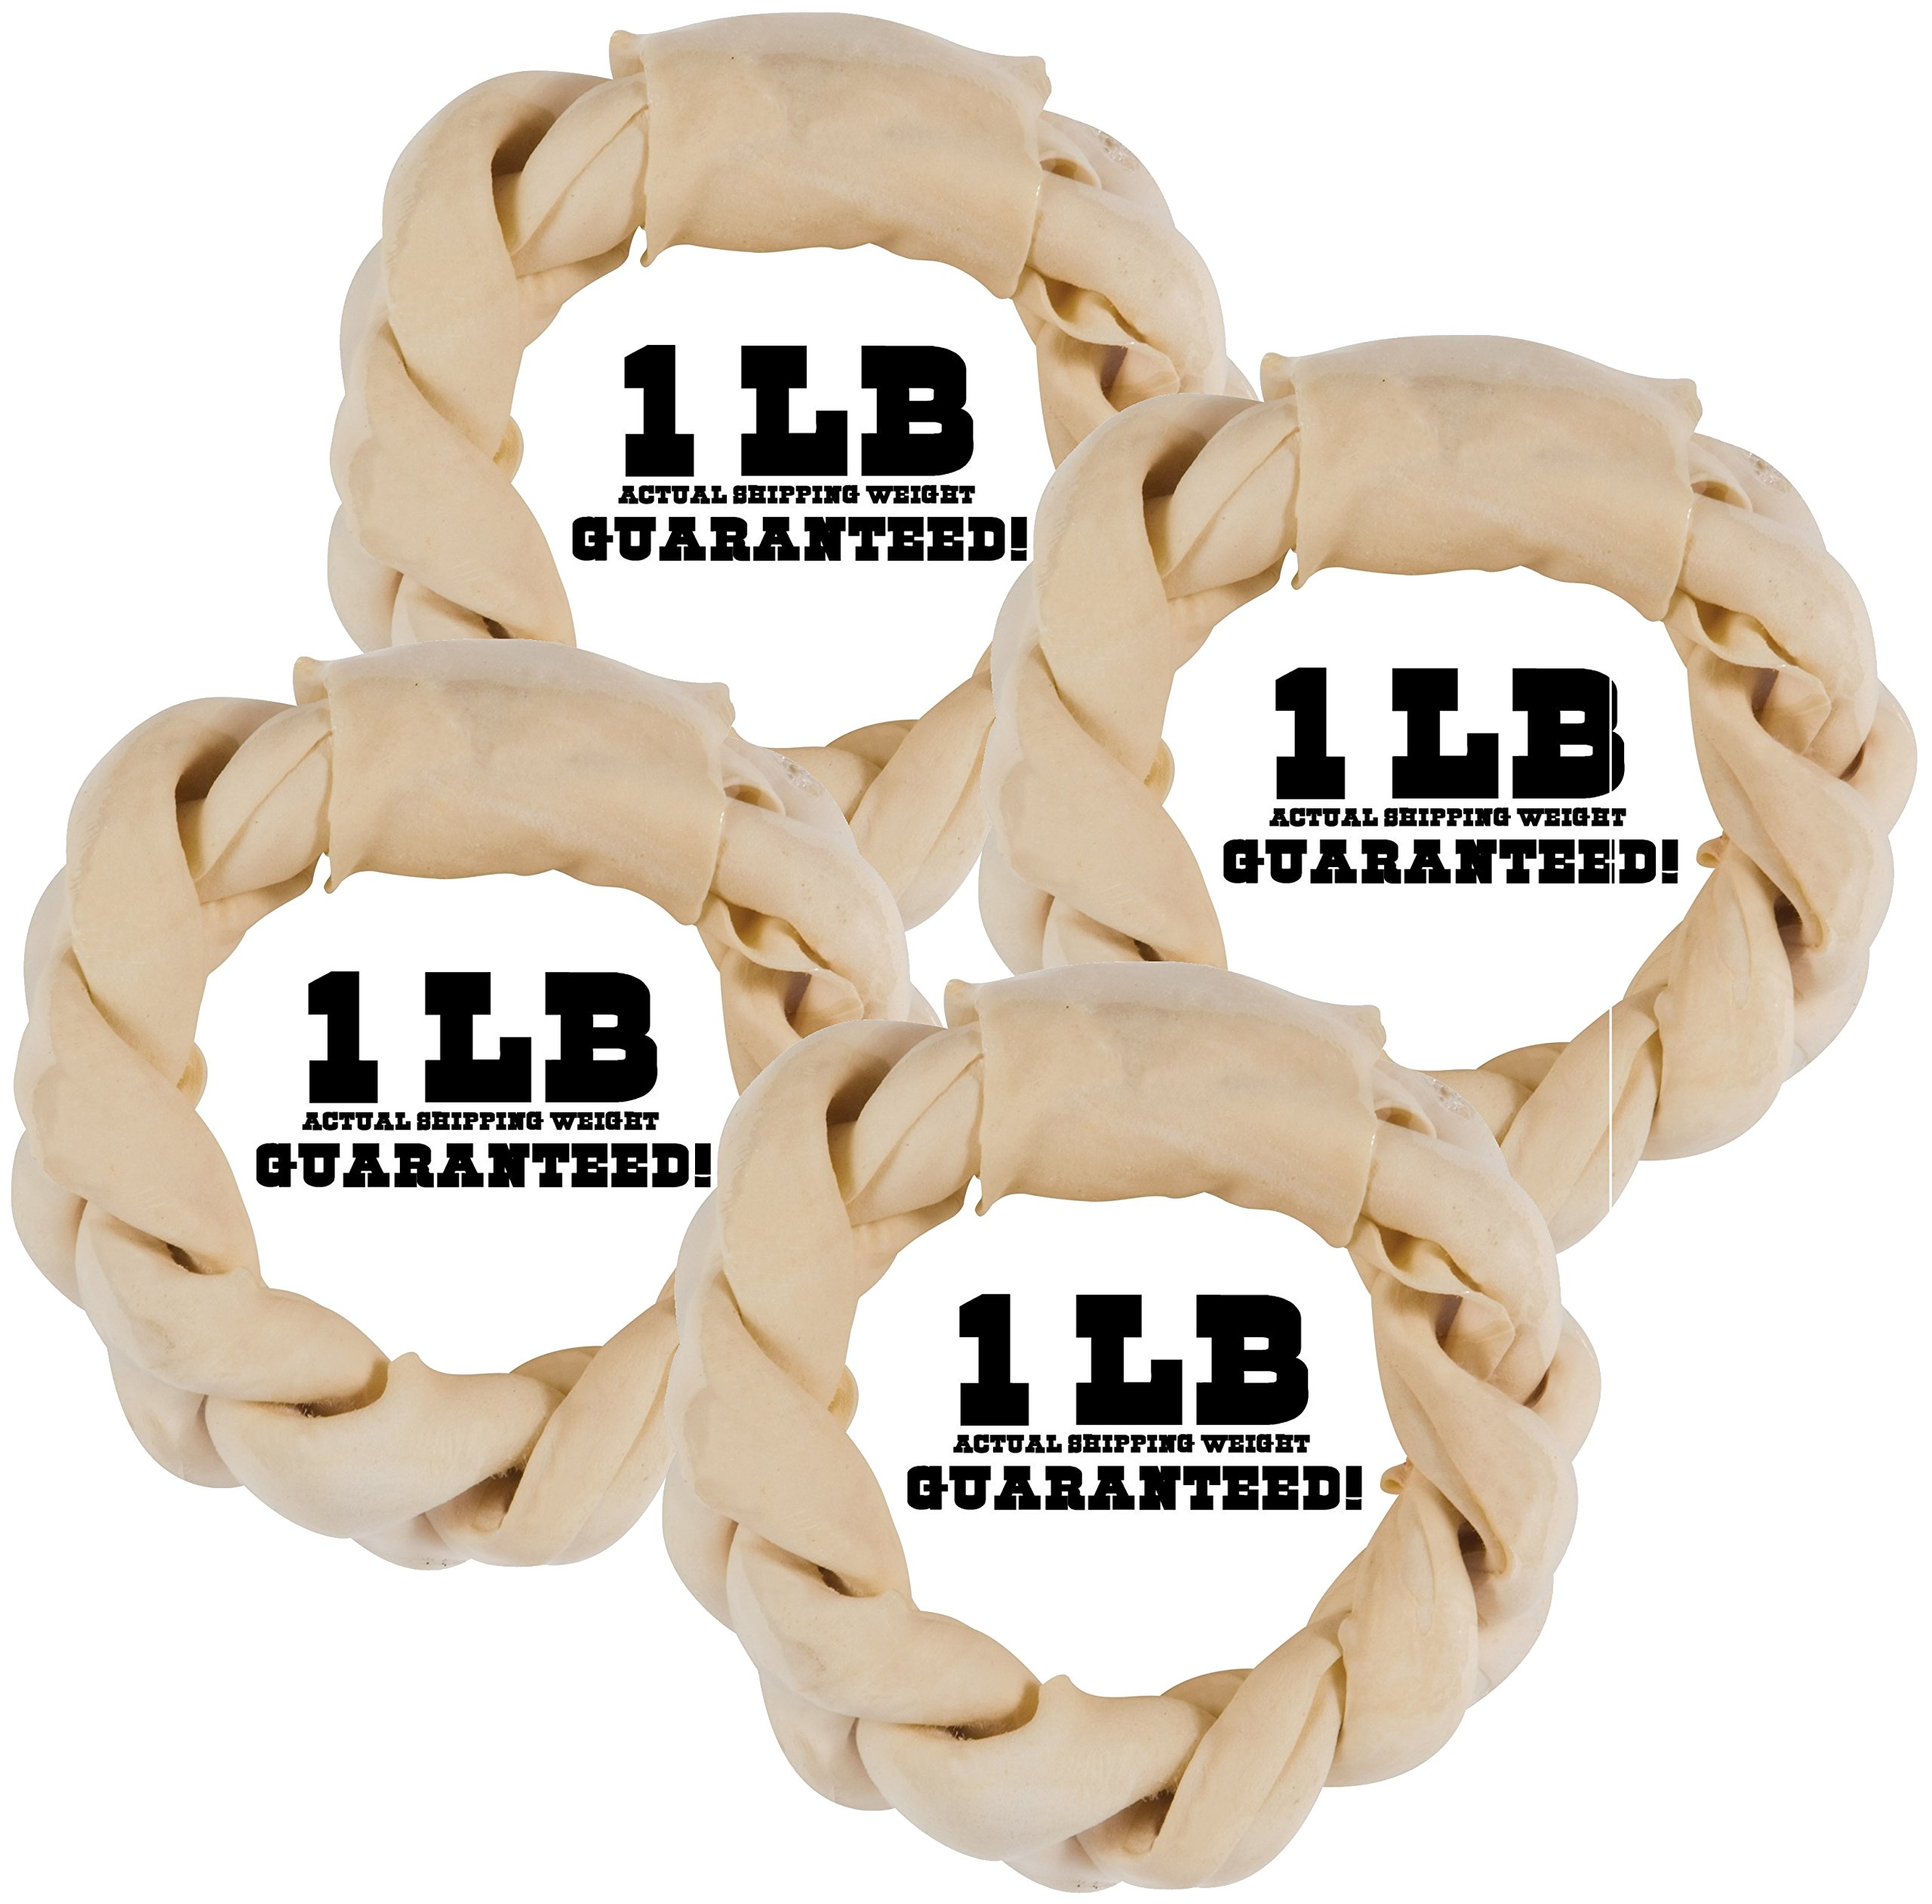 Balls 'n Bones BIG DOG ONE-POUND Braided Rawhide Rings for Large Dogs (Natural, 4-Pack) by Balls 'n Bones